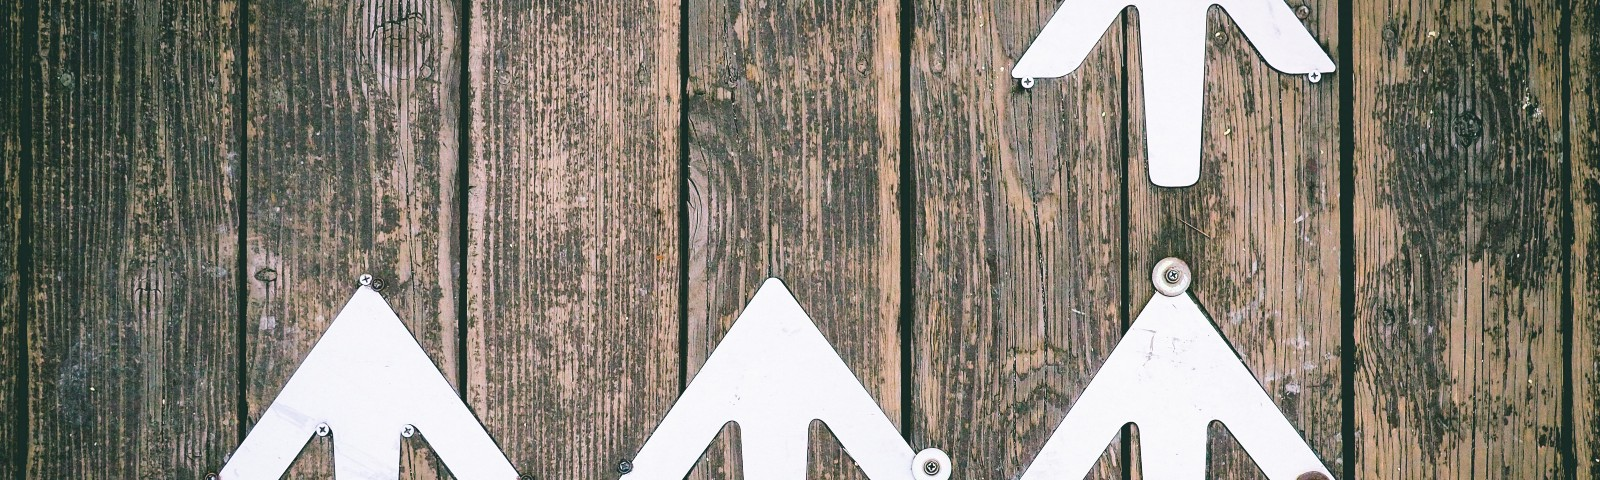 White arrows facing upward screwed to a rough wooden background